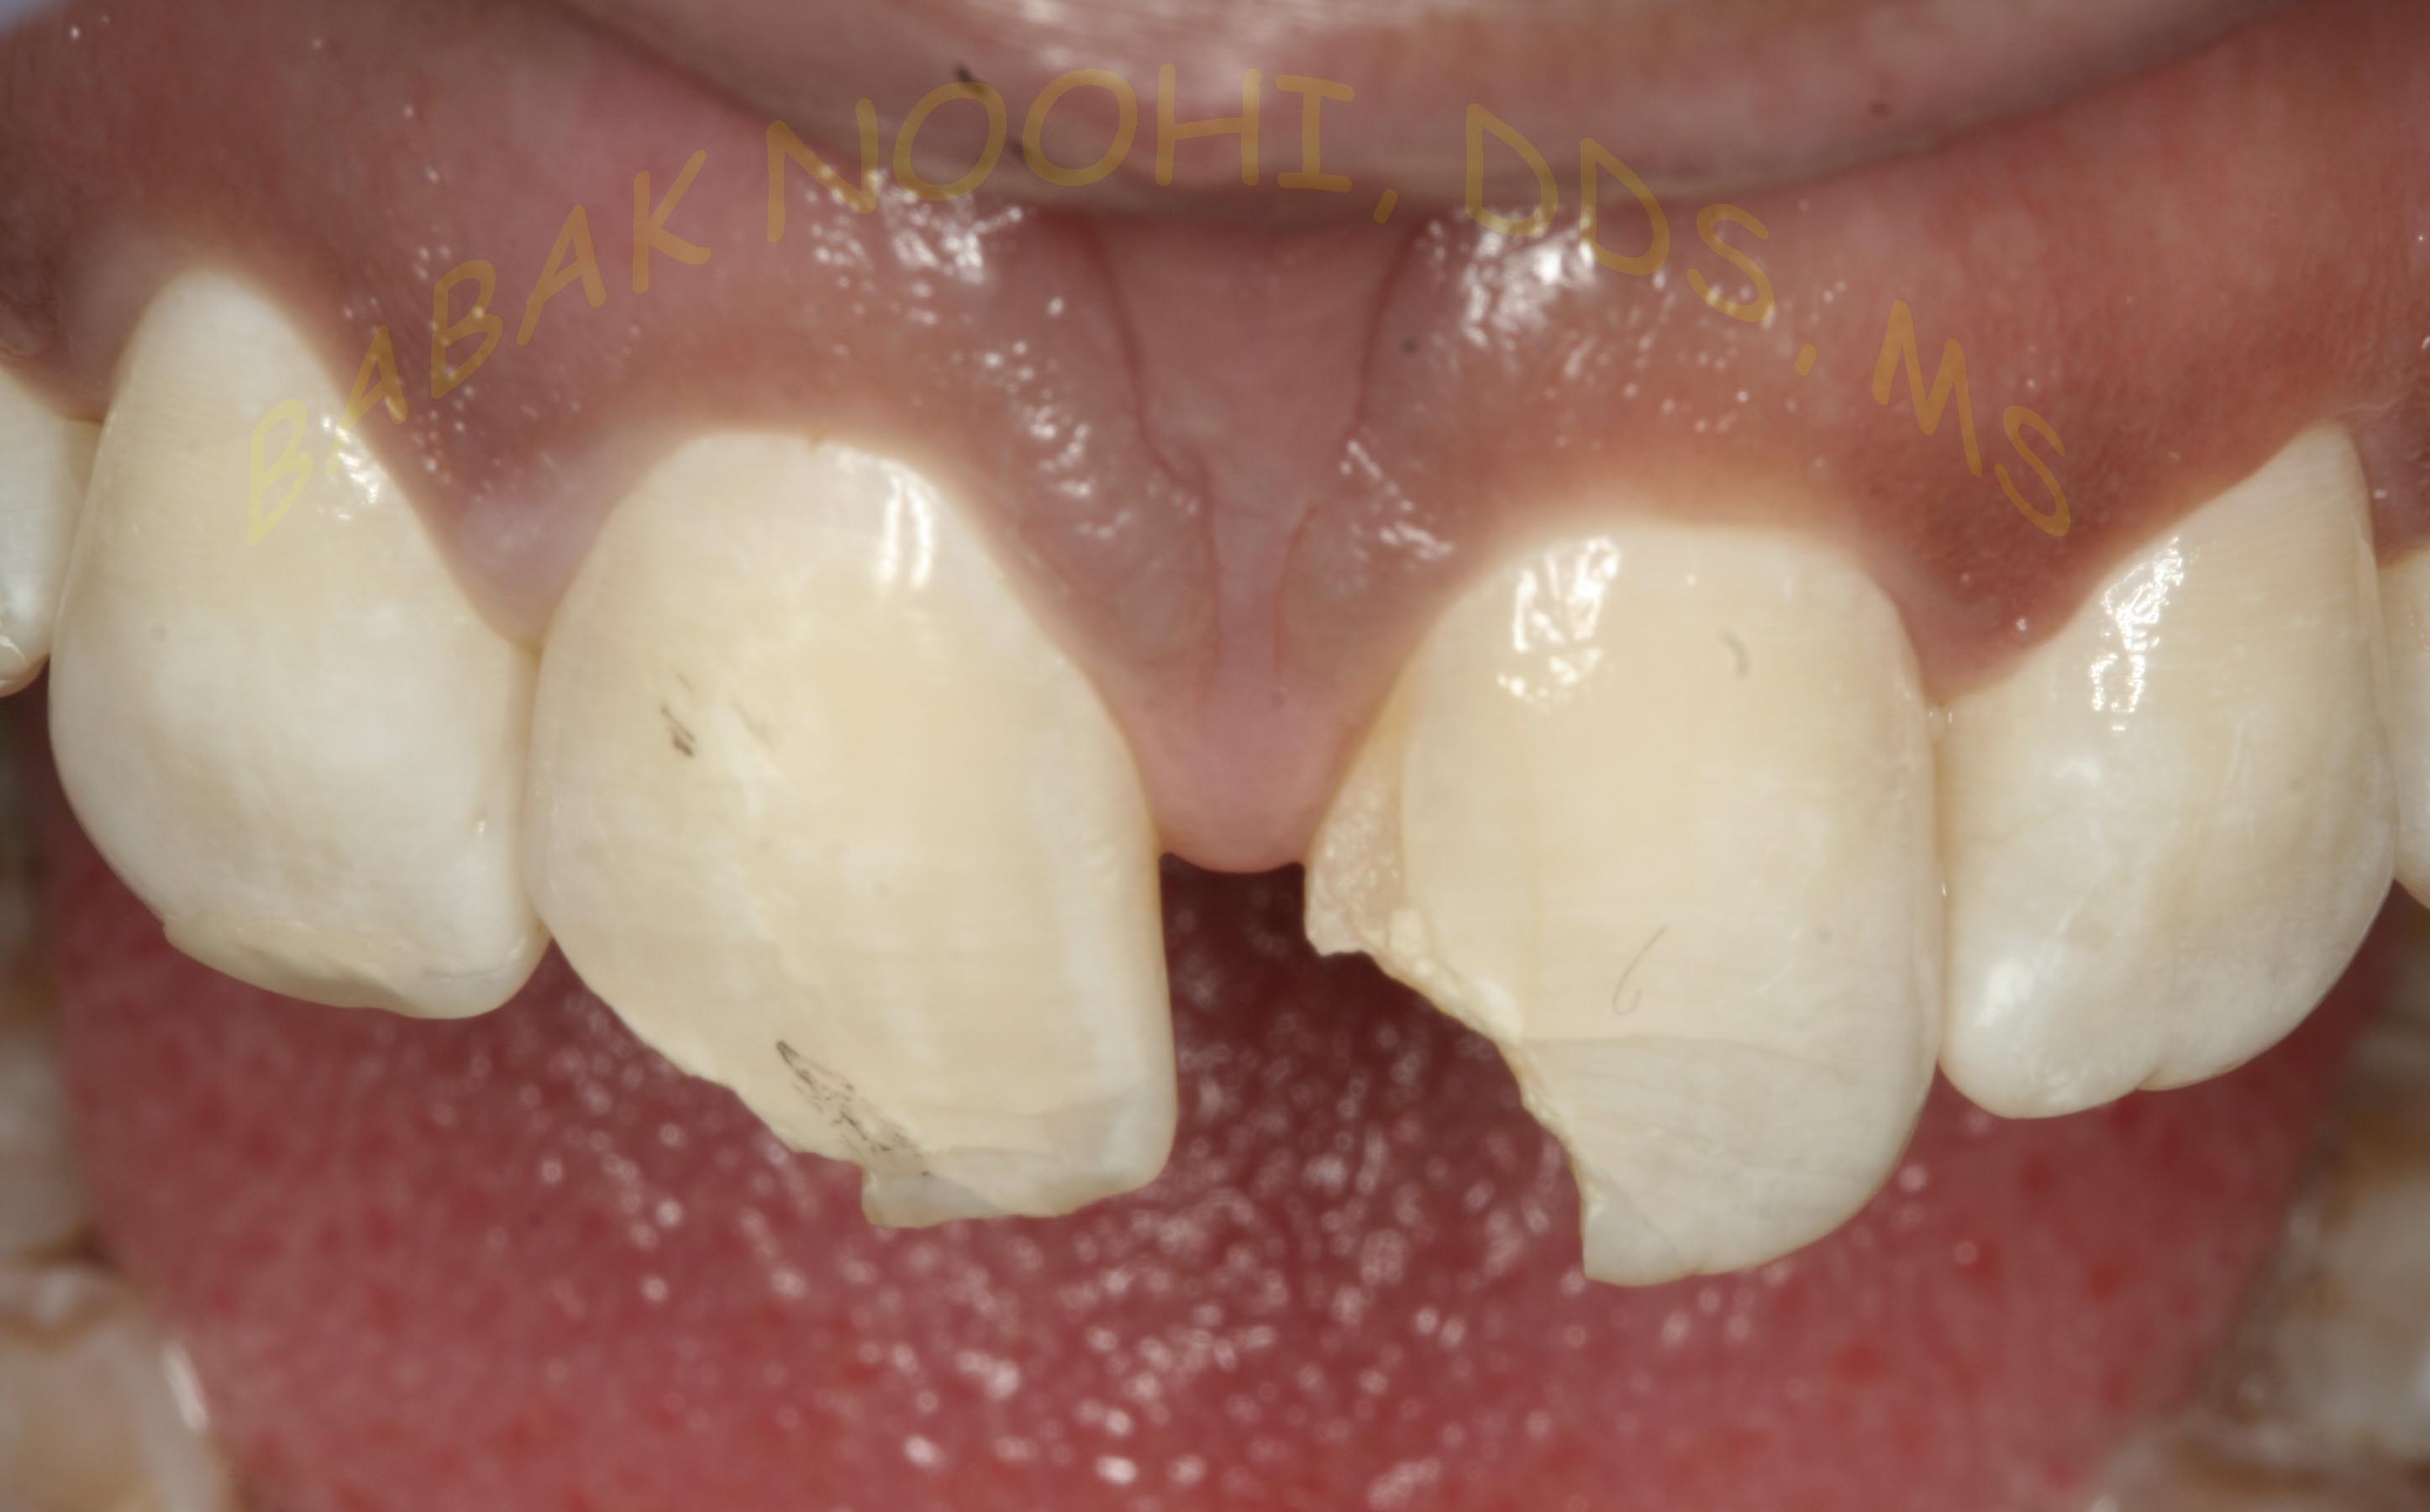 Trauma to Anterior teeth 02